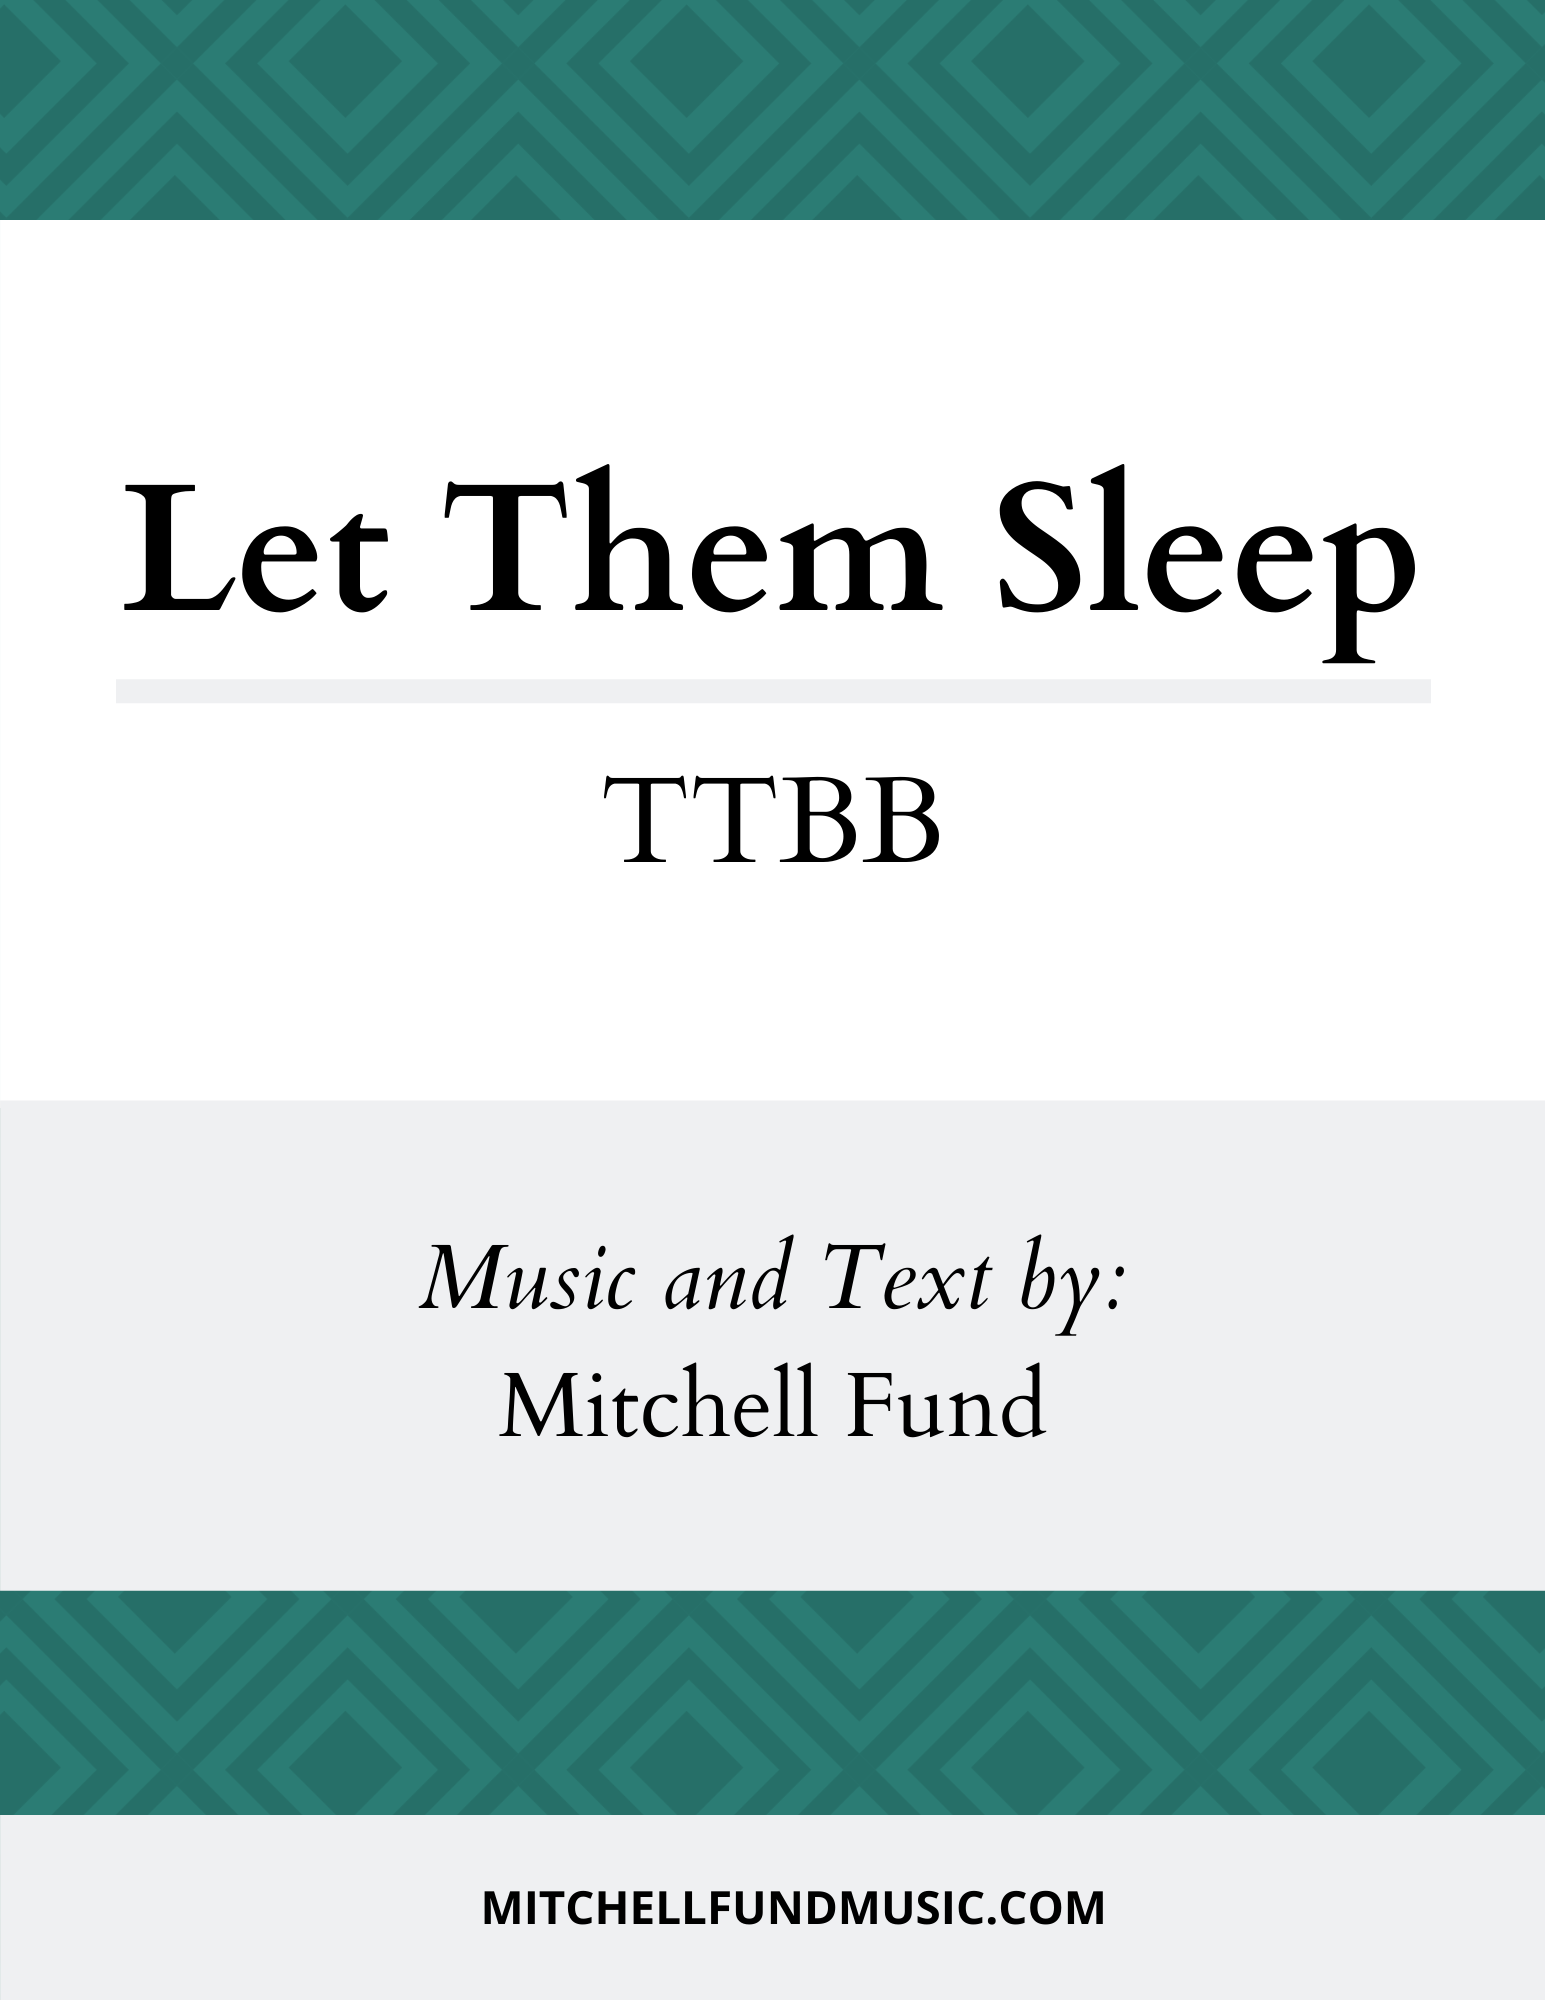 Let Them Sleep cover (TTBB)